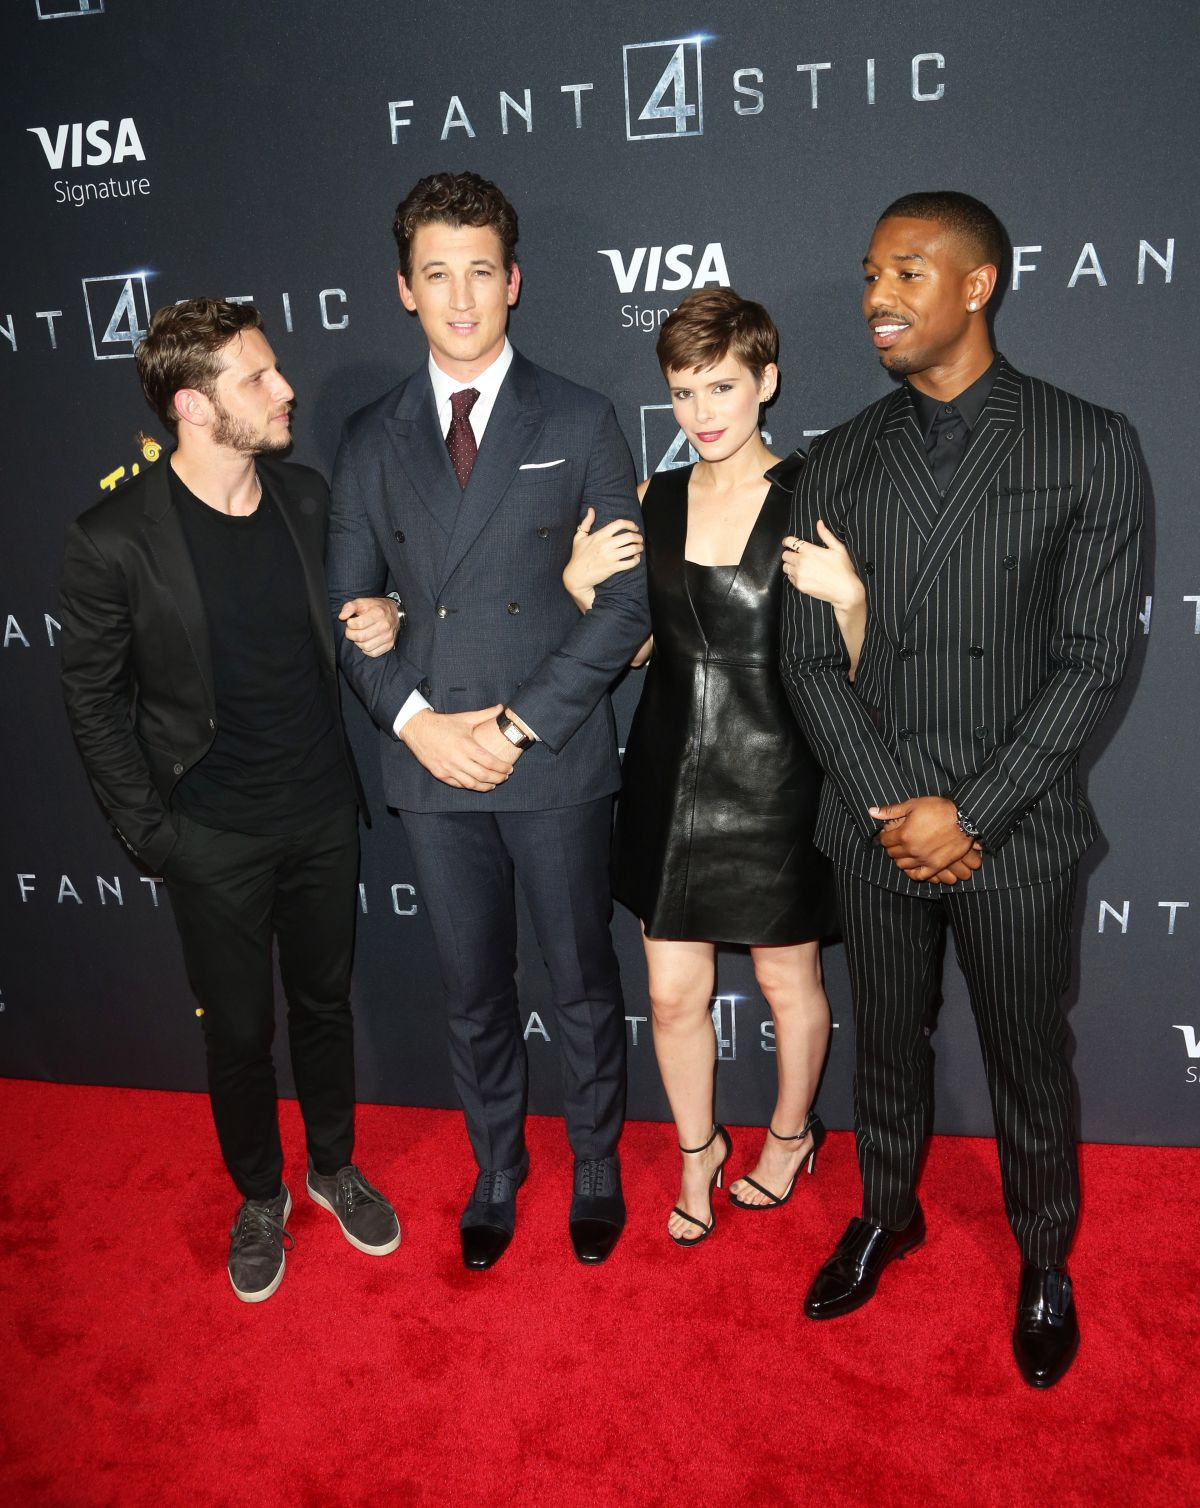 michael-b-jordan-jamie-bell-kate-mara-and-miles-teller-at-fantastic-four-premiere-in-new-york_1